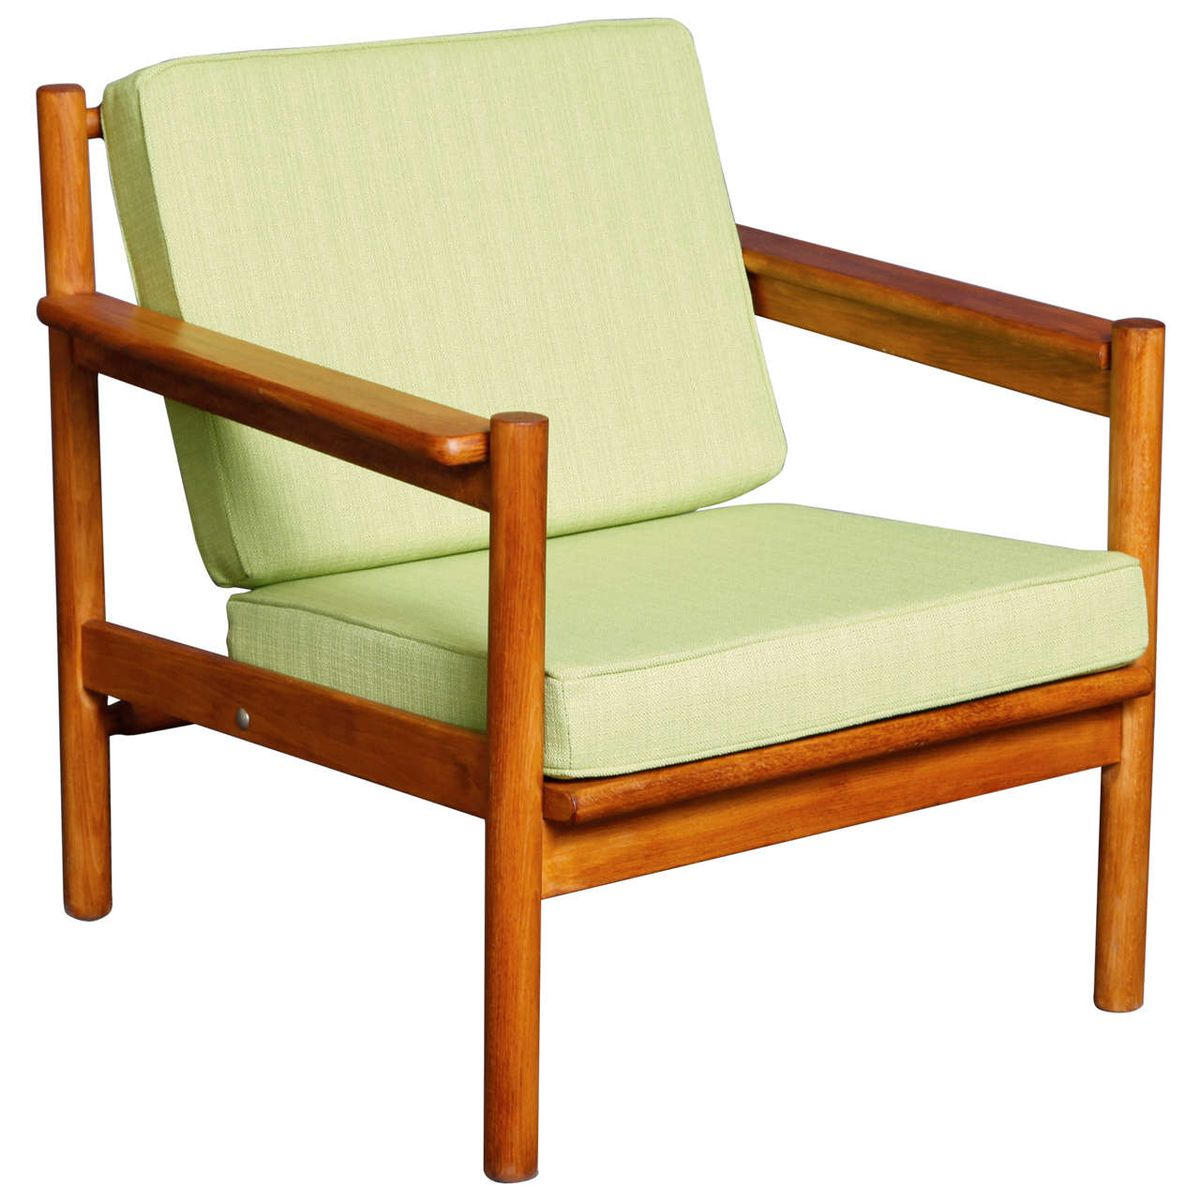 vintage scandinavian armchair in teak for sale at pamono